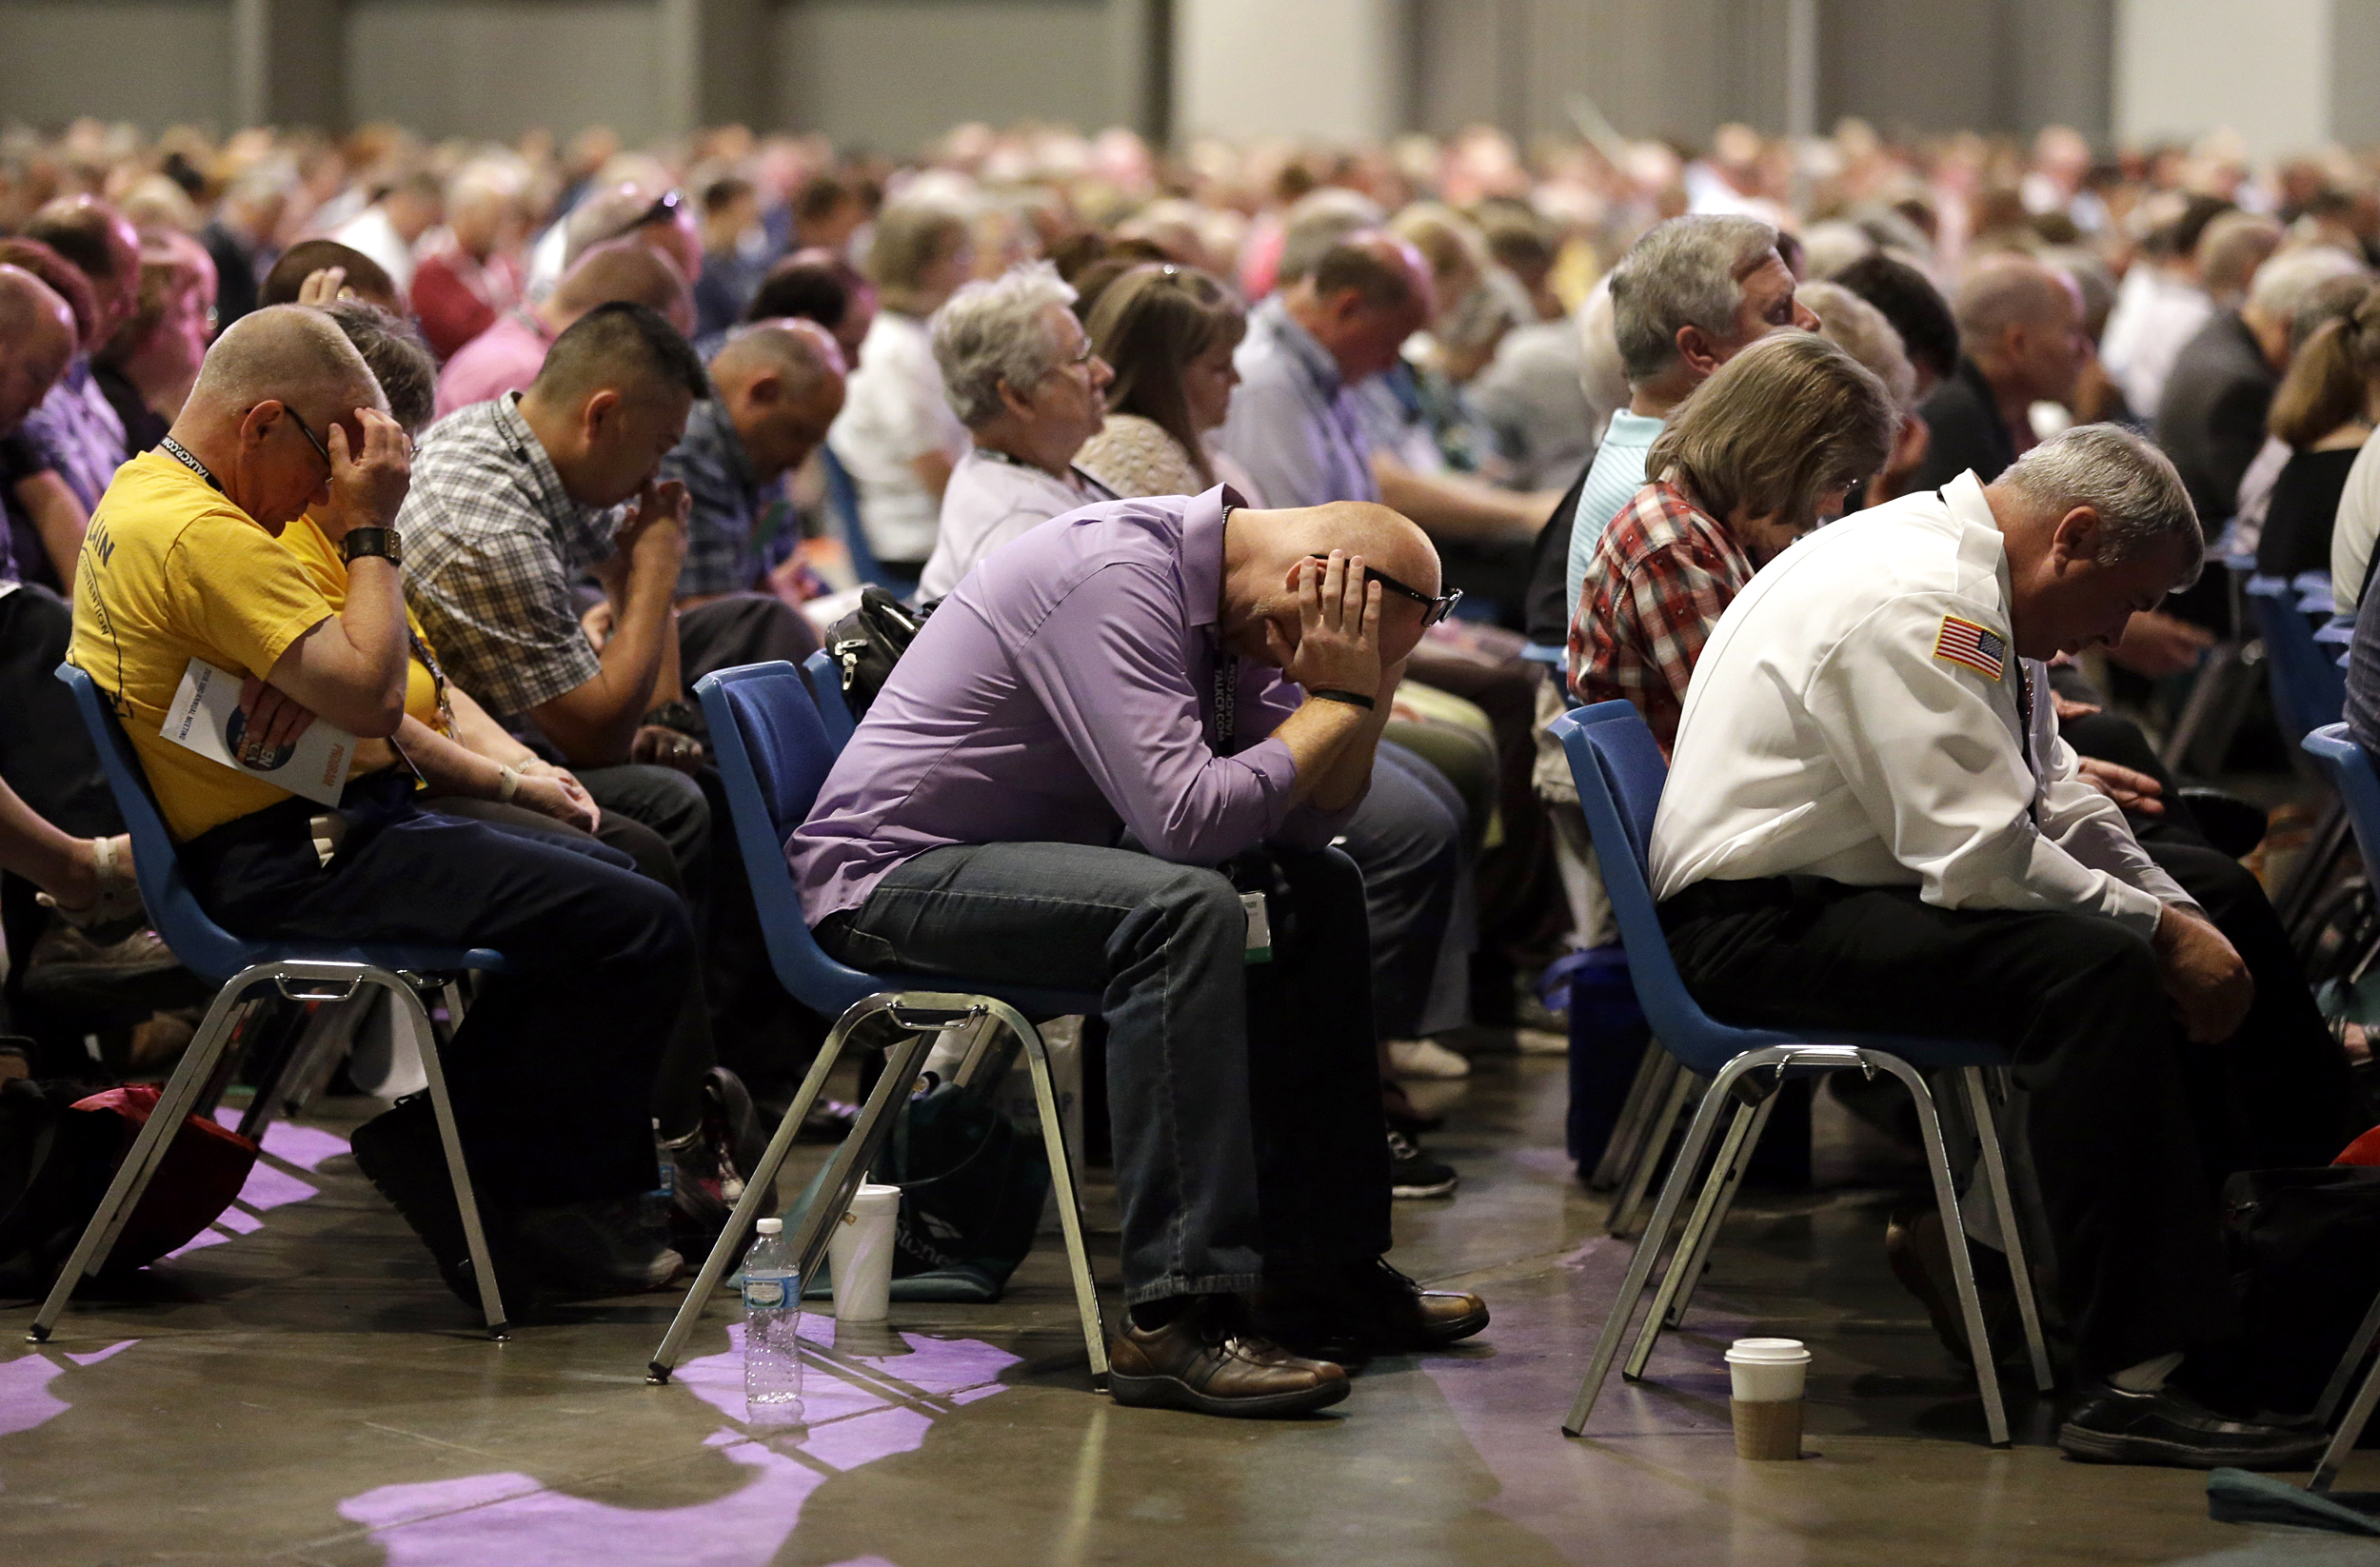 220-Baptist-ministers,-deacons,-others-found-guilty-of-sex-abuse,-report-says